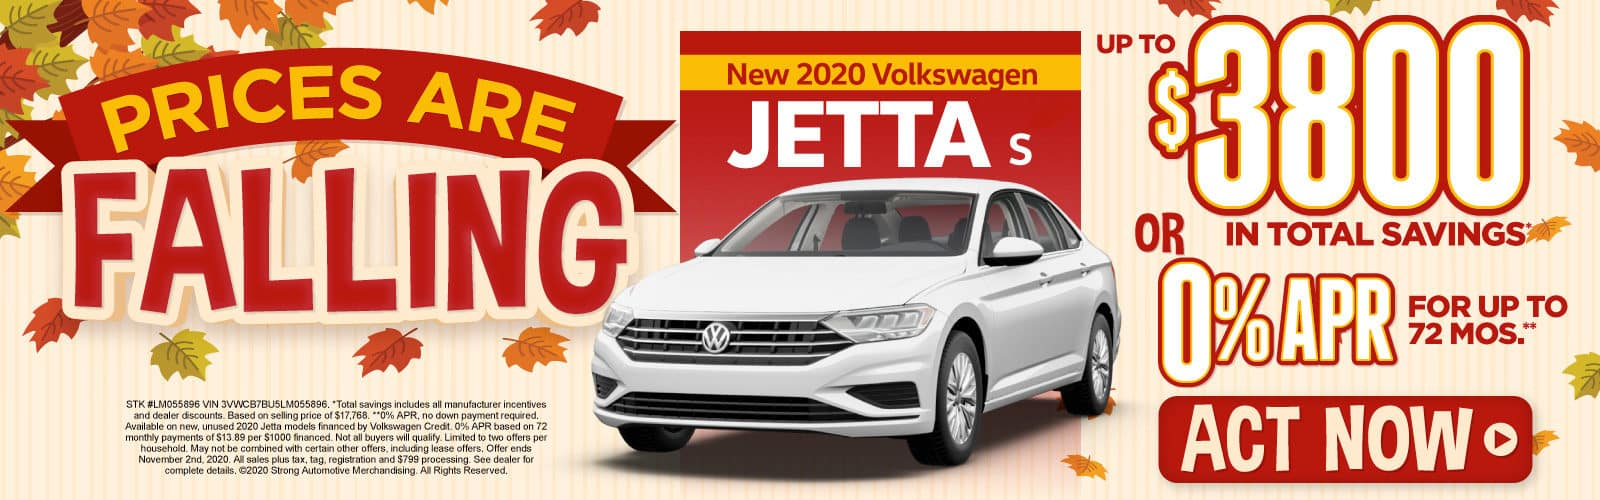 New 2020 VW Jetta - Up to $3800 in total savings - Act Now